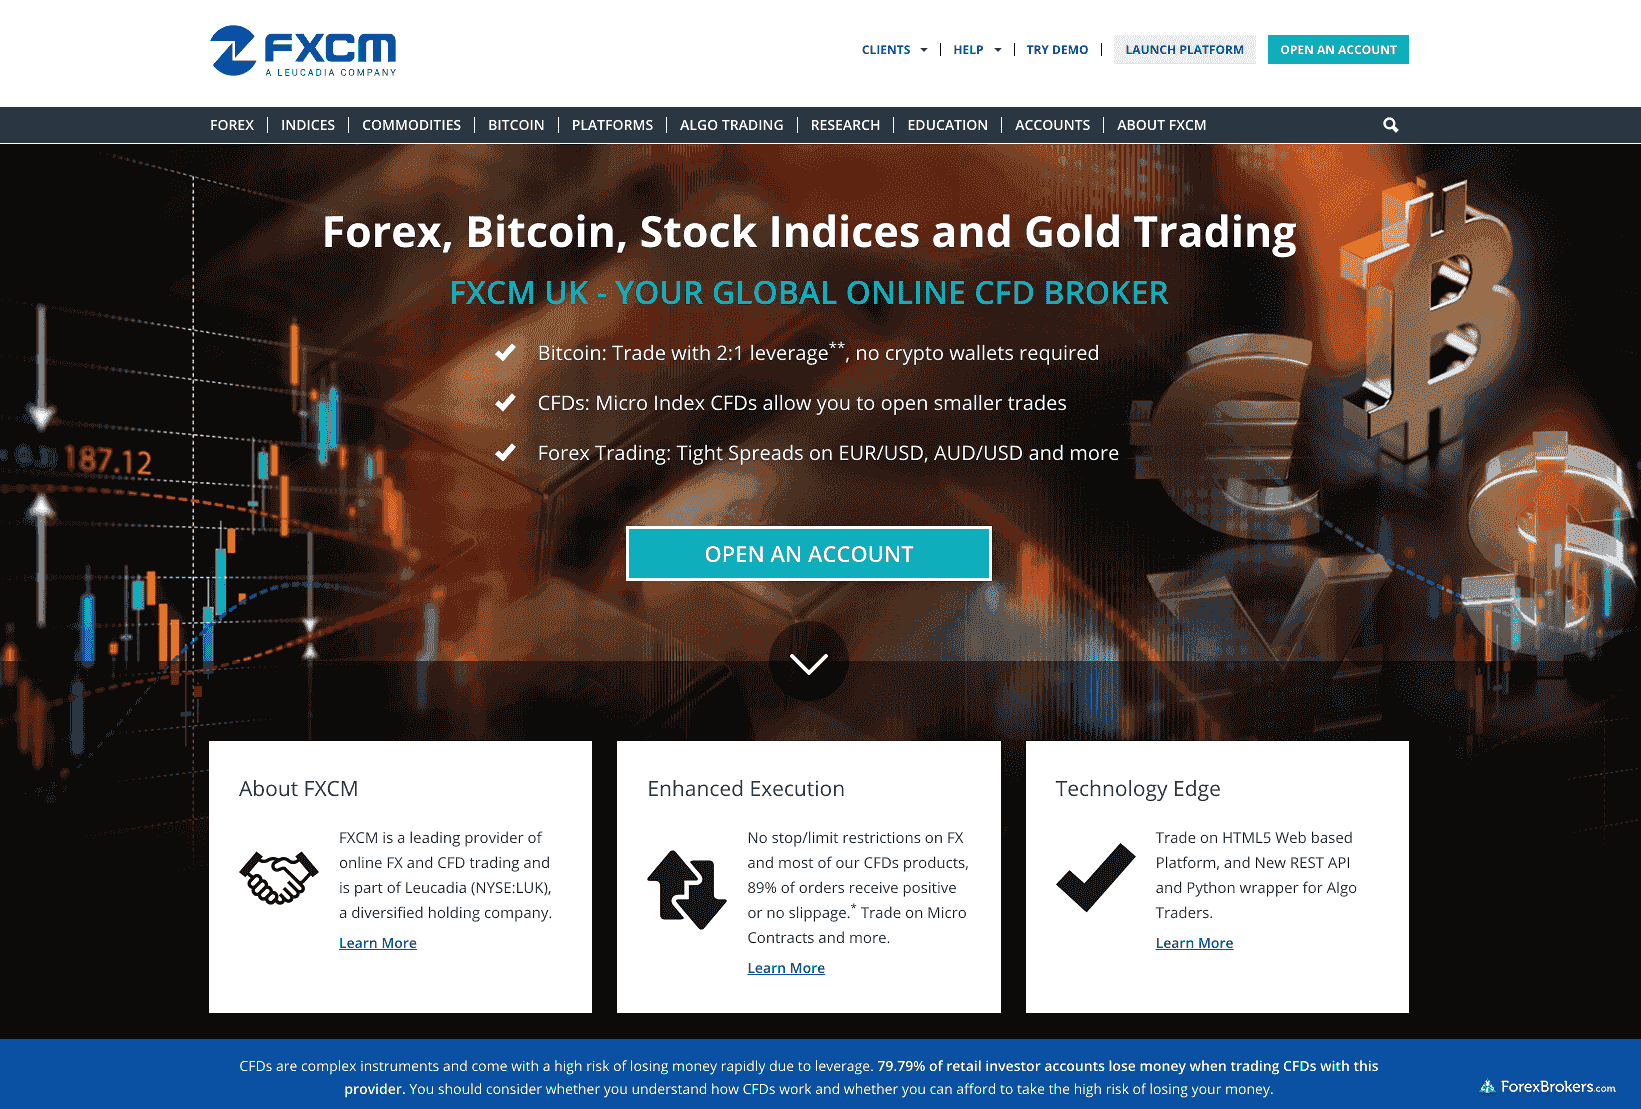 fxcm standard account